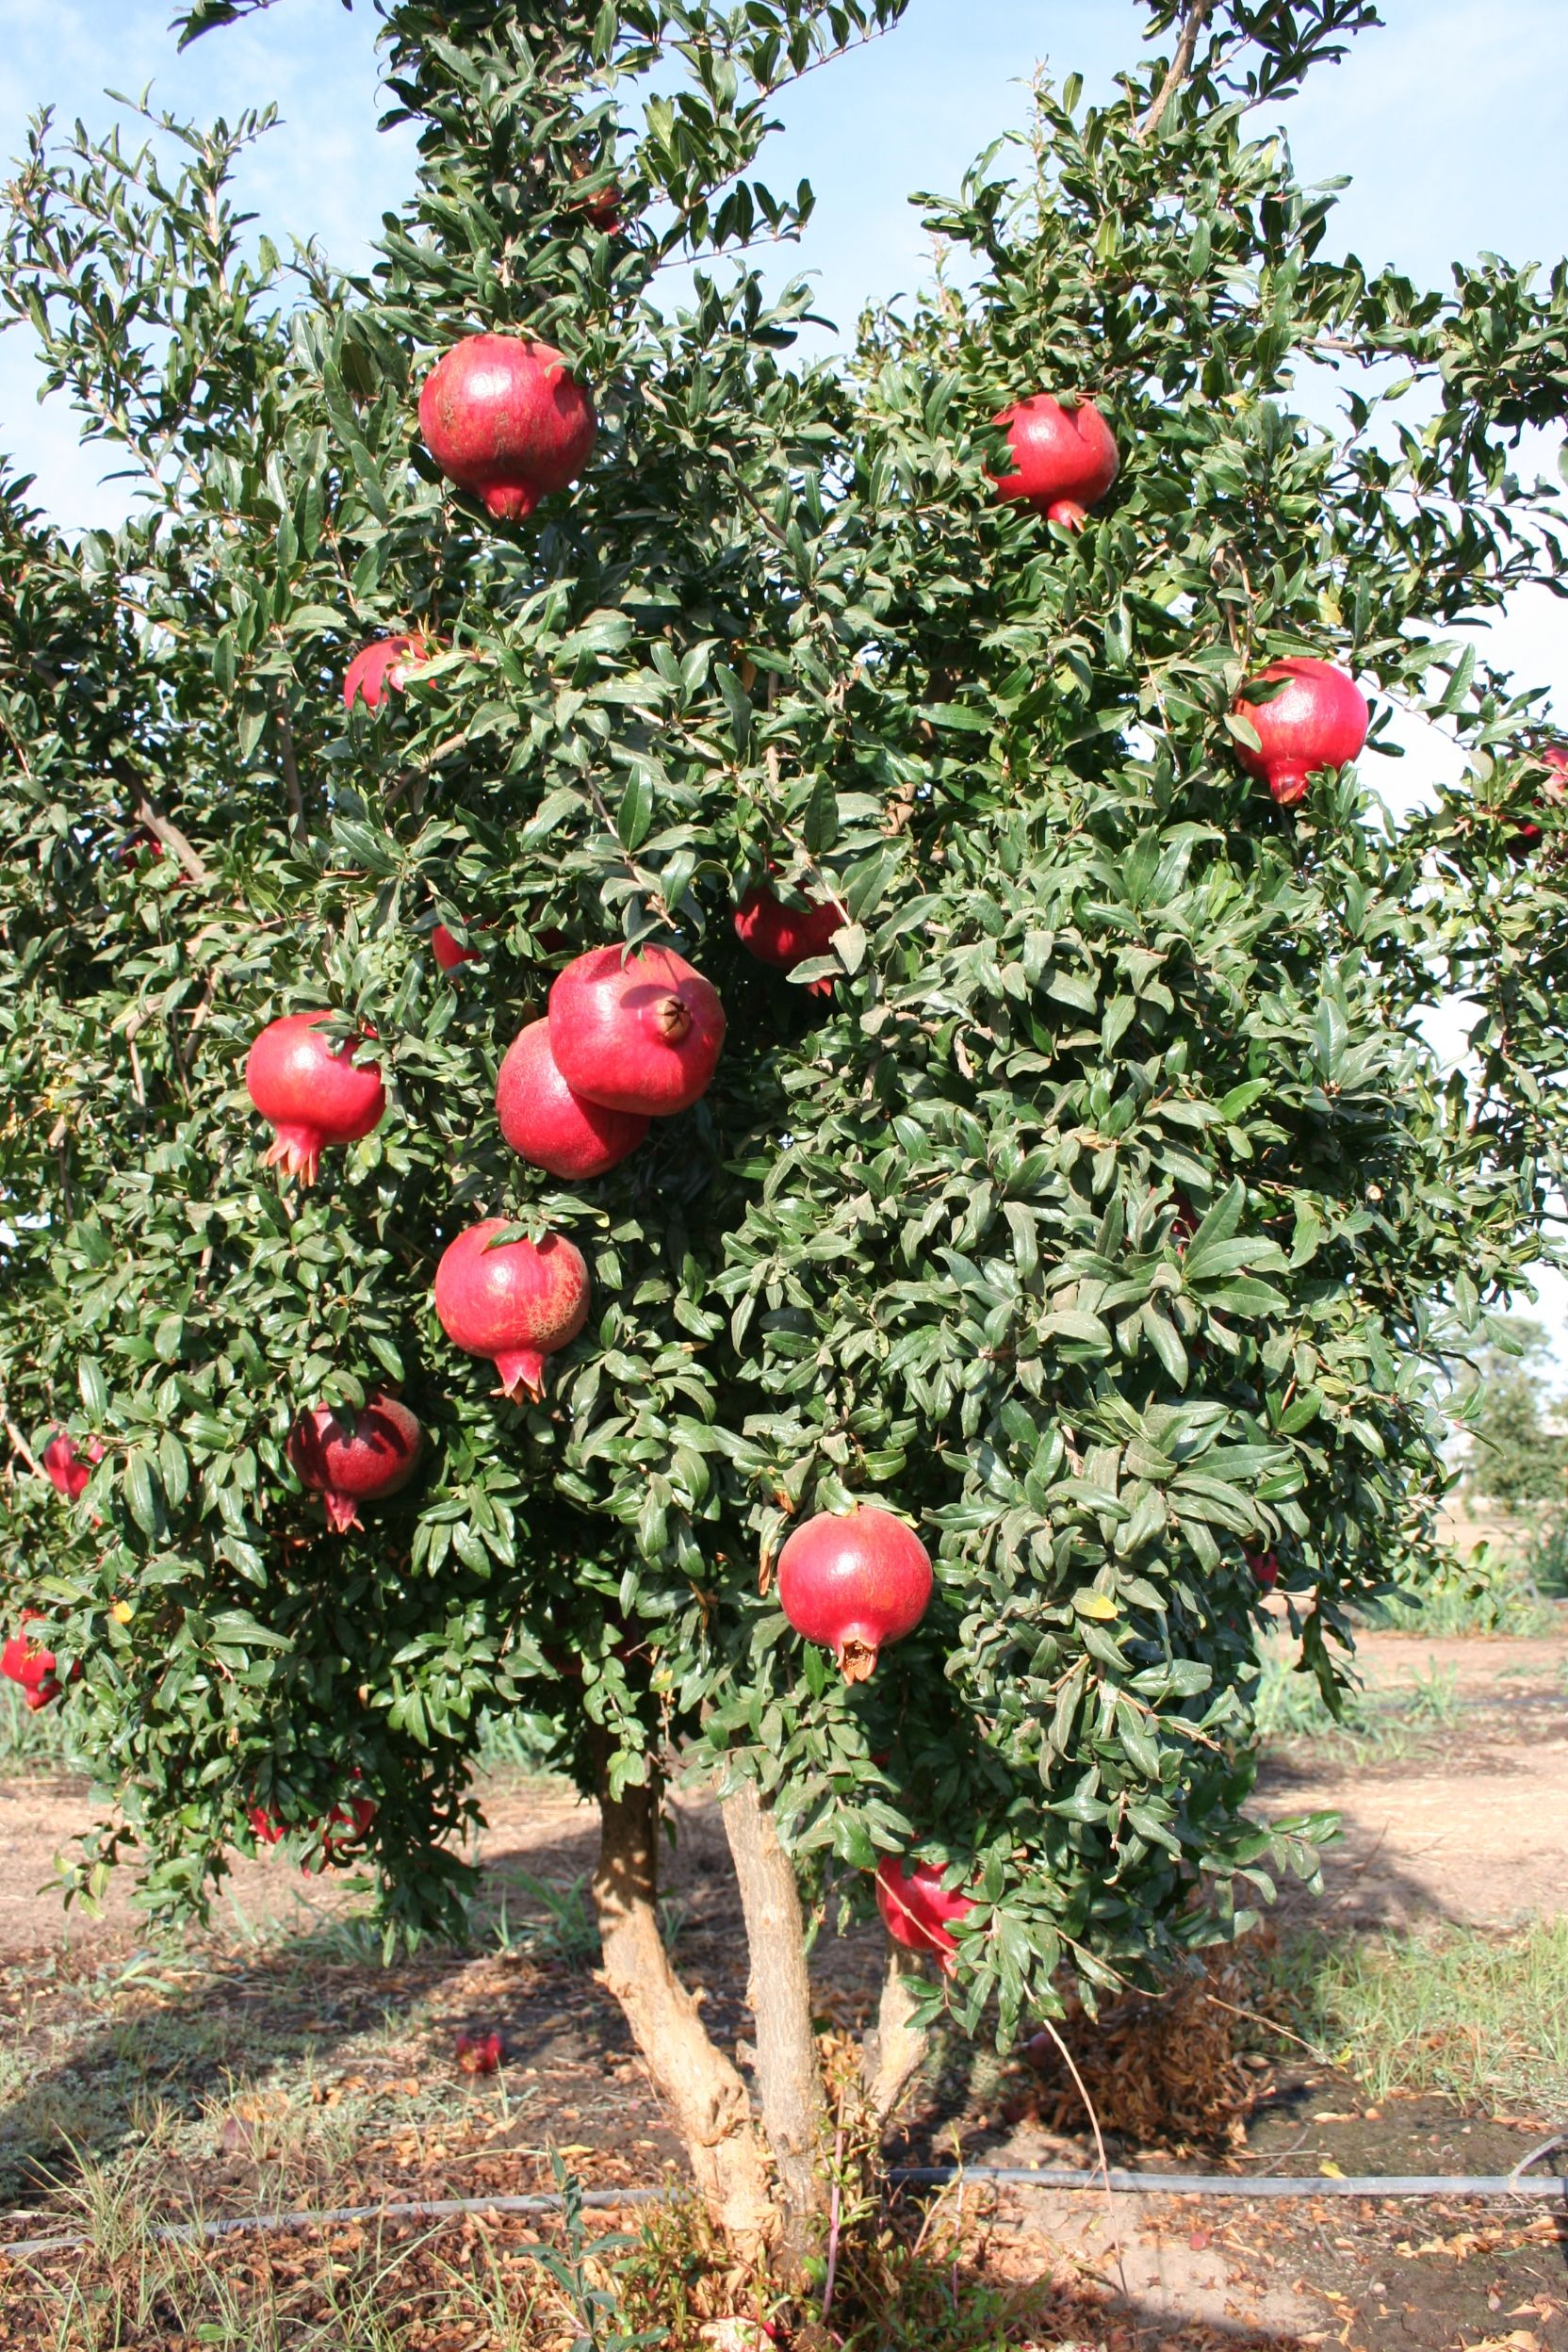 As the pomegranate grows. Useful qualities and properties of pomegranate 69